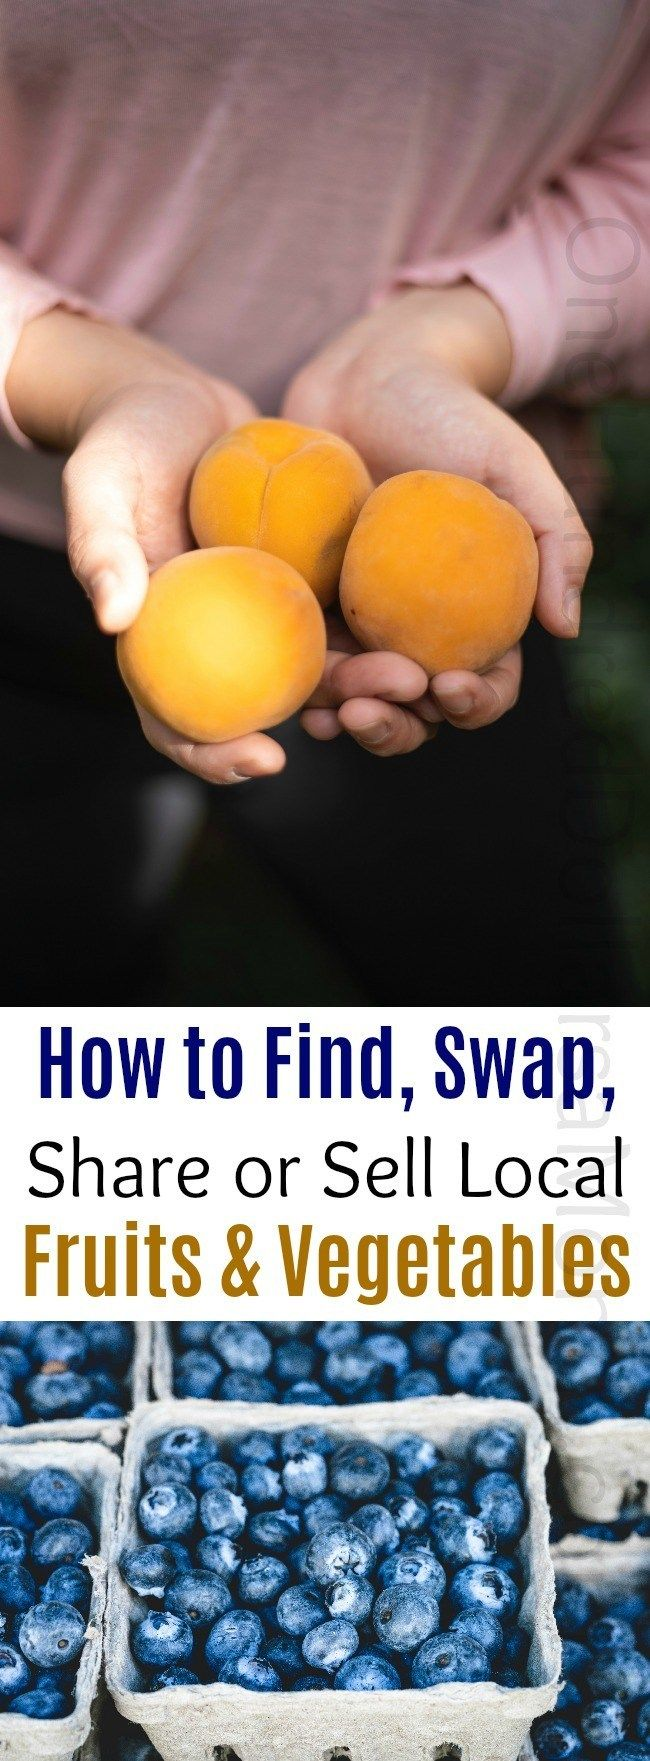 How to Find, Swap, Share or Sell Local Fruits and